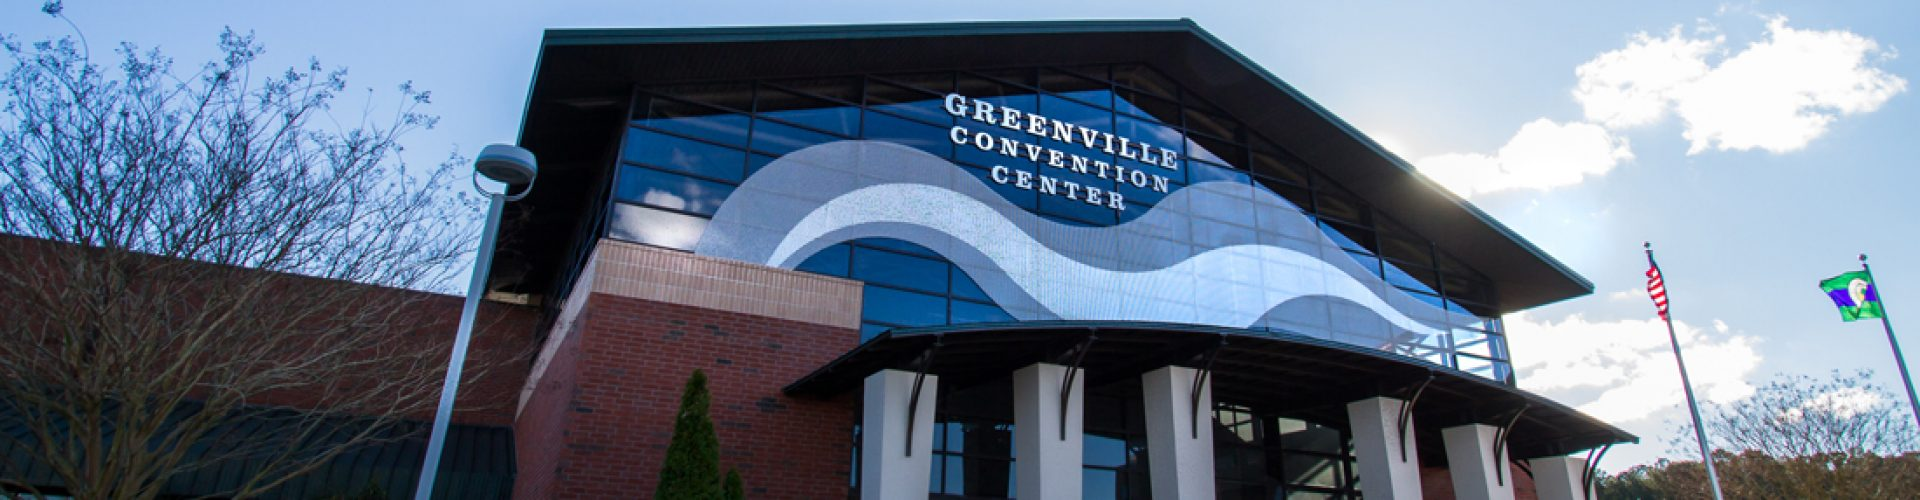 Greenville convention center